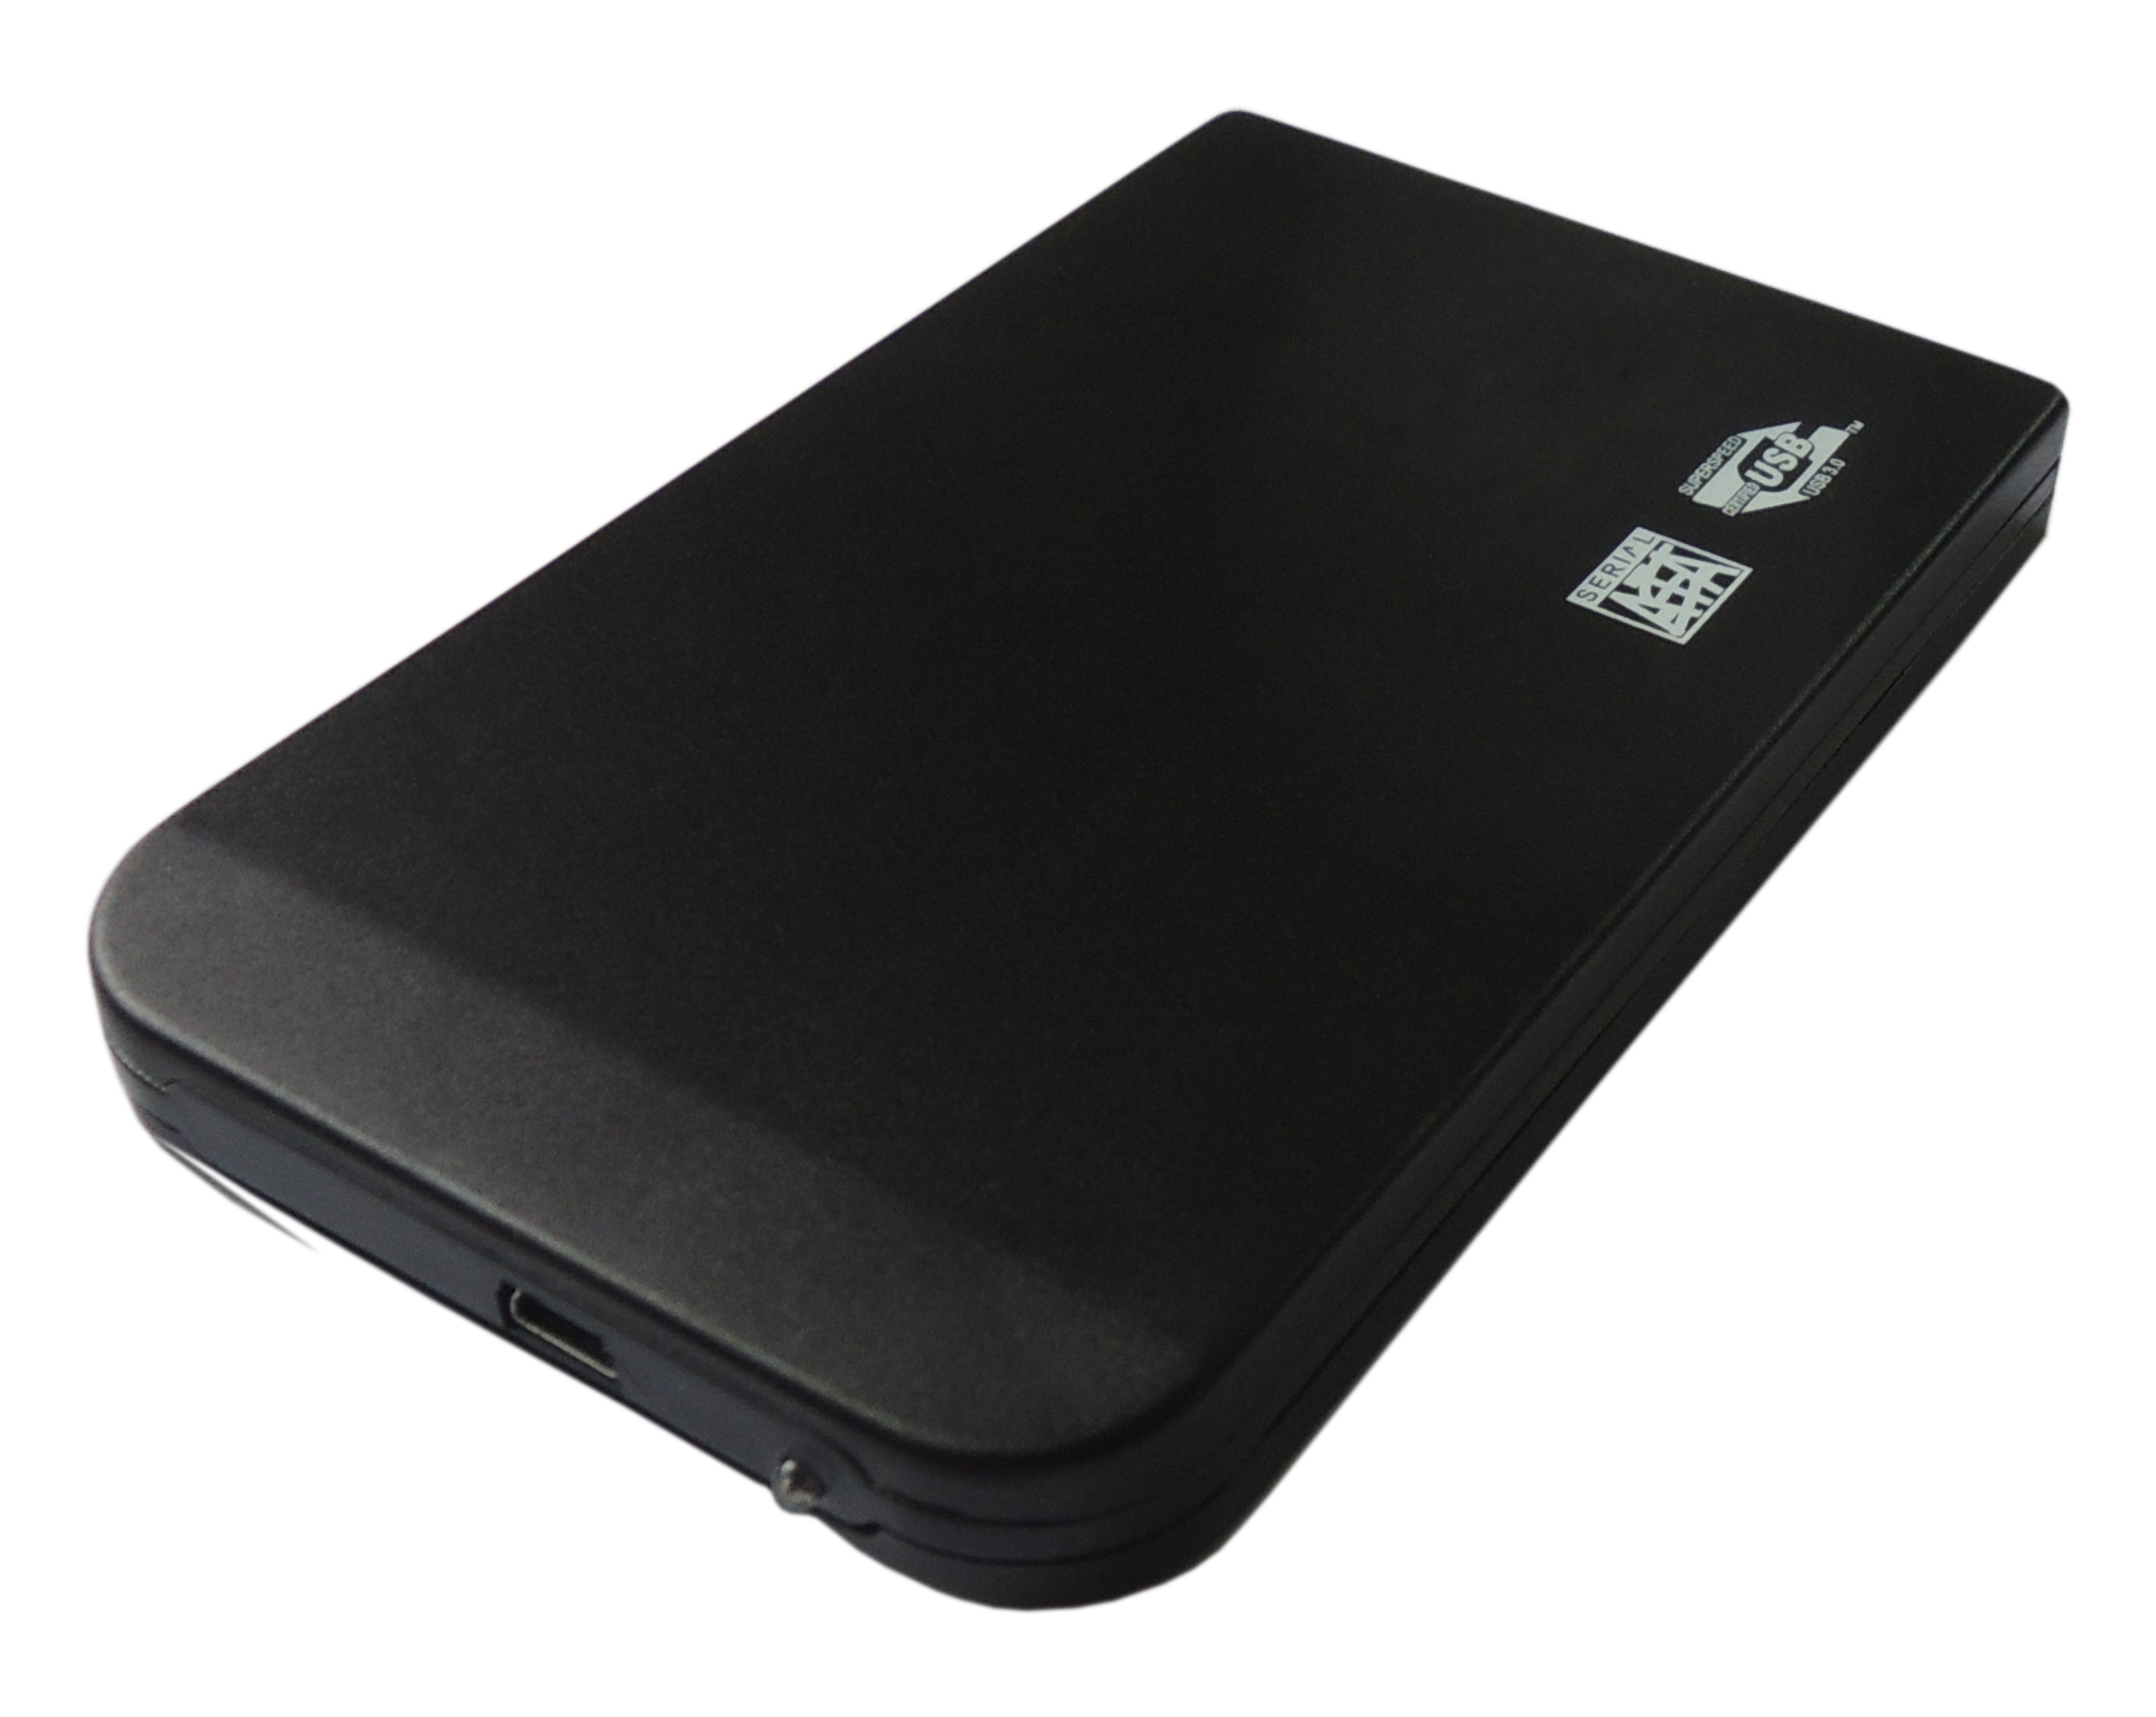 Case HDD 2.5 USB 3.0